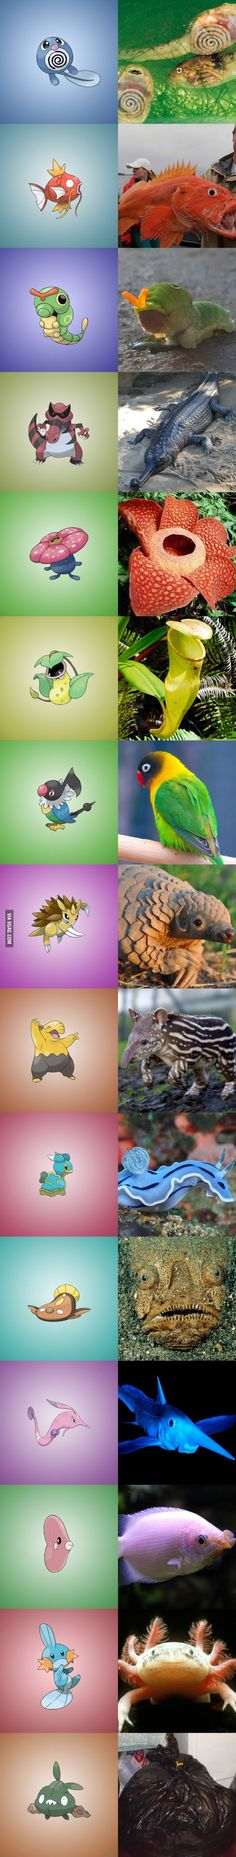 15 Pokemons You Didn't Realize Were Based On Real World Things http://9gag.com/gag/aYpEyBx?ref=fsidebar